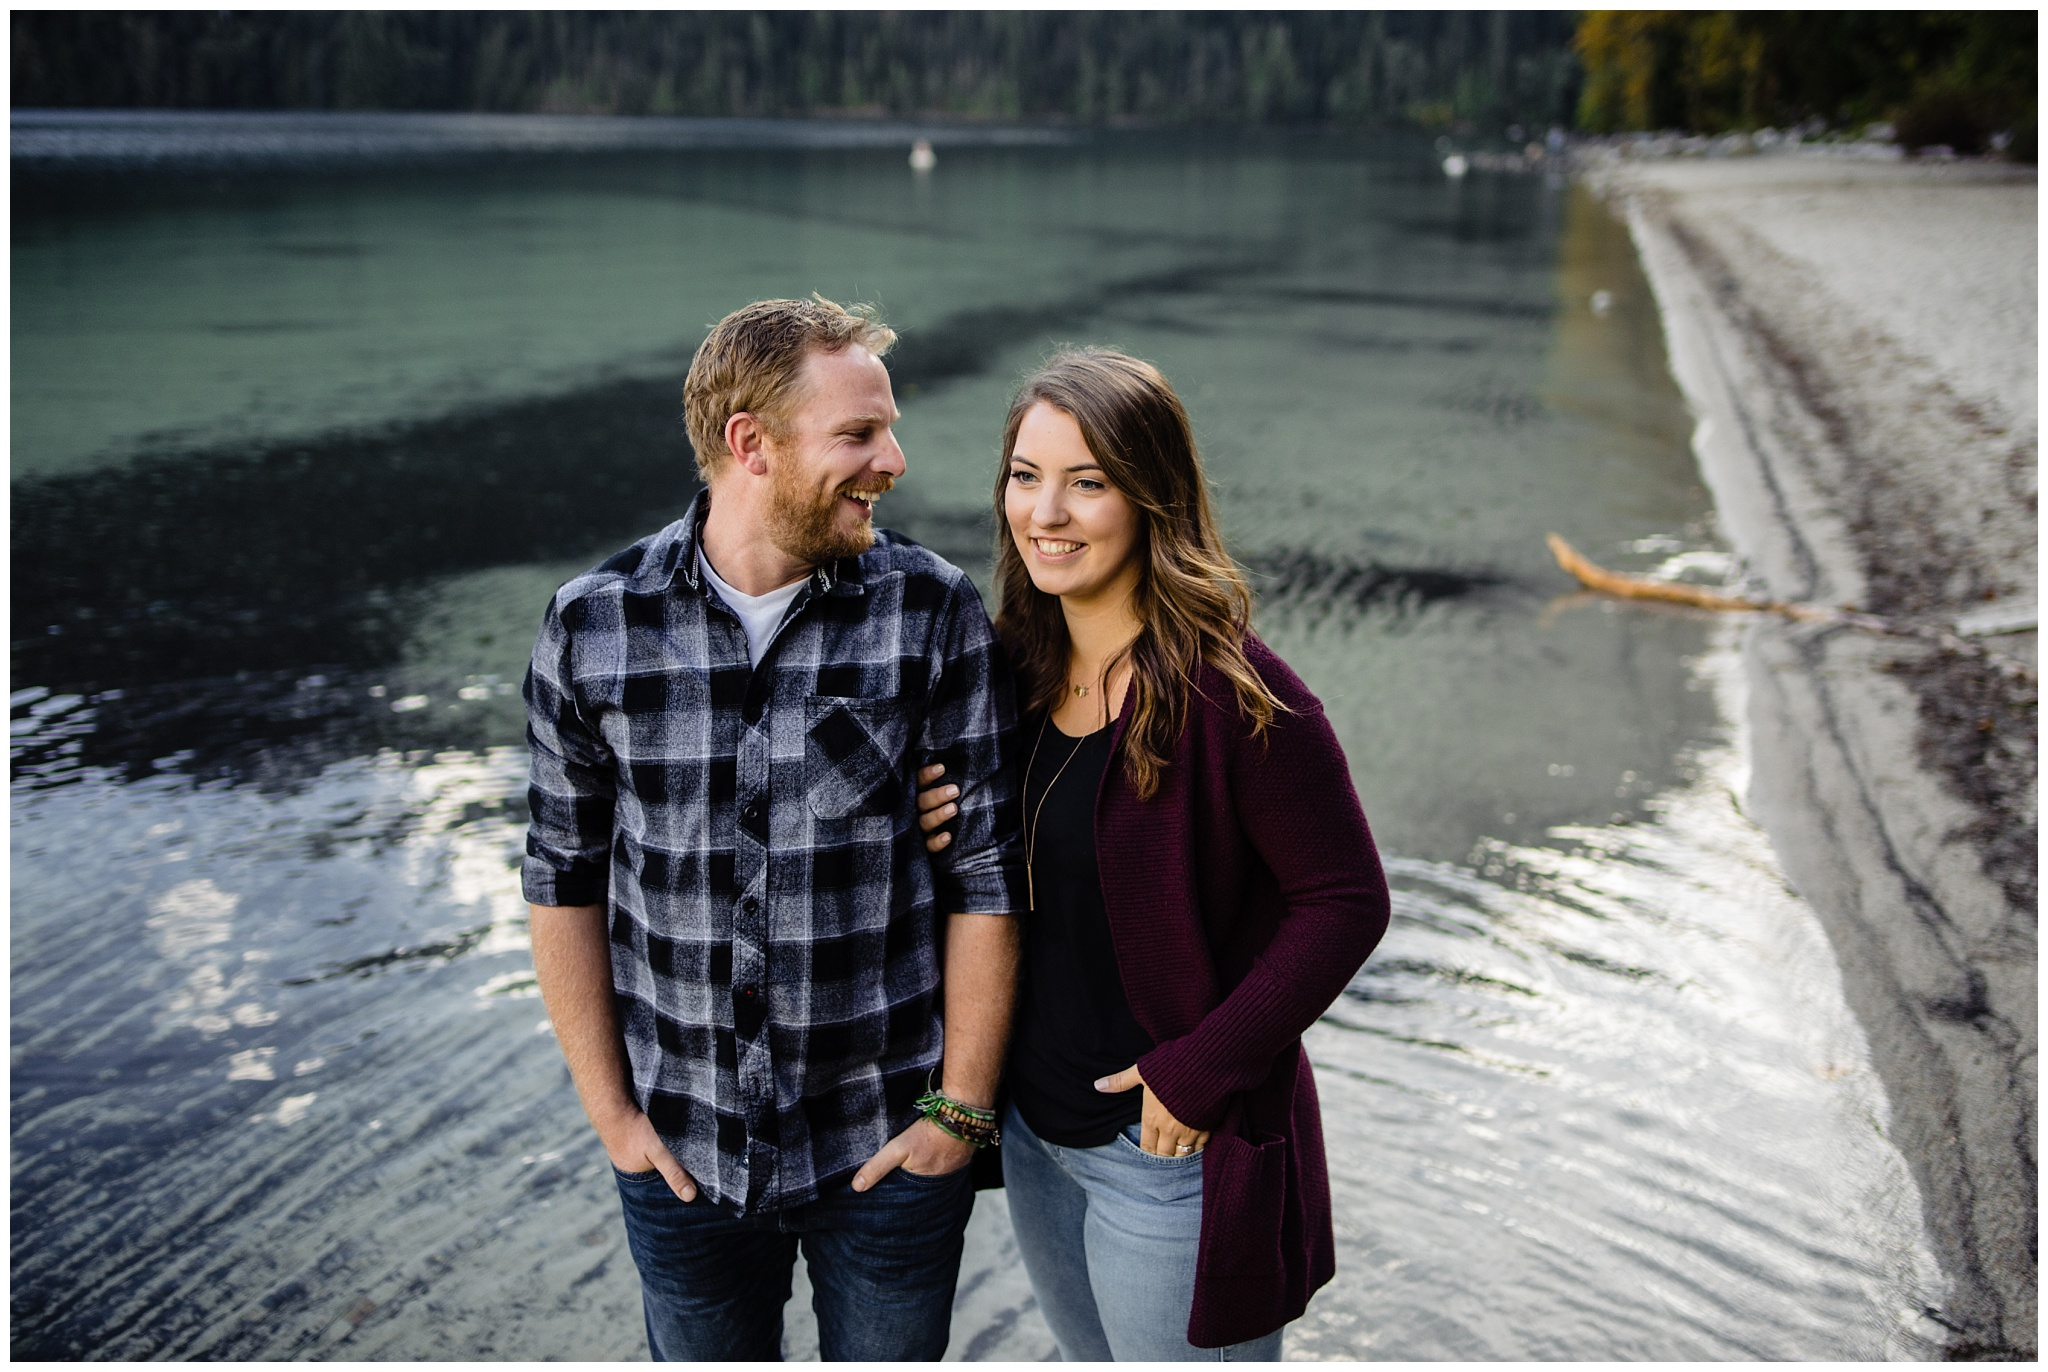 Chilliwack Lake Fall Engagement Photo Inspiration Poses Chilliwack Engagement Photographer_0006.jpg